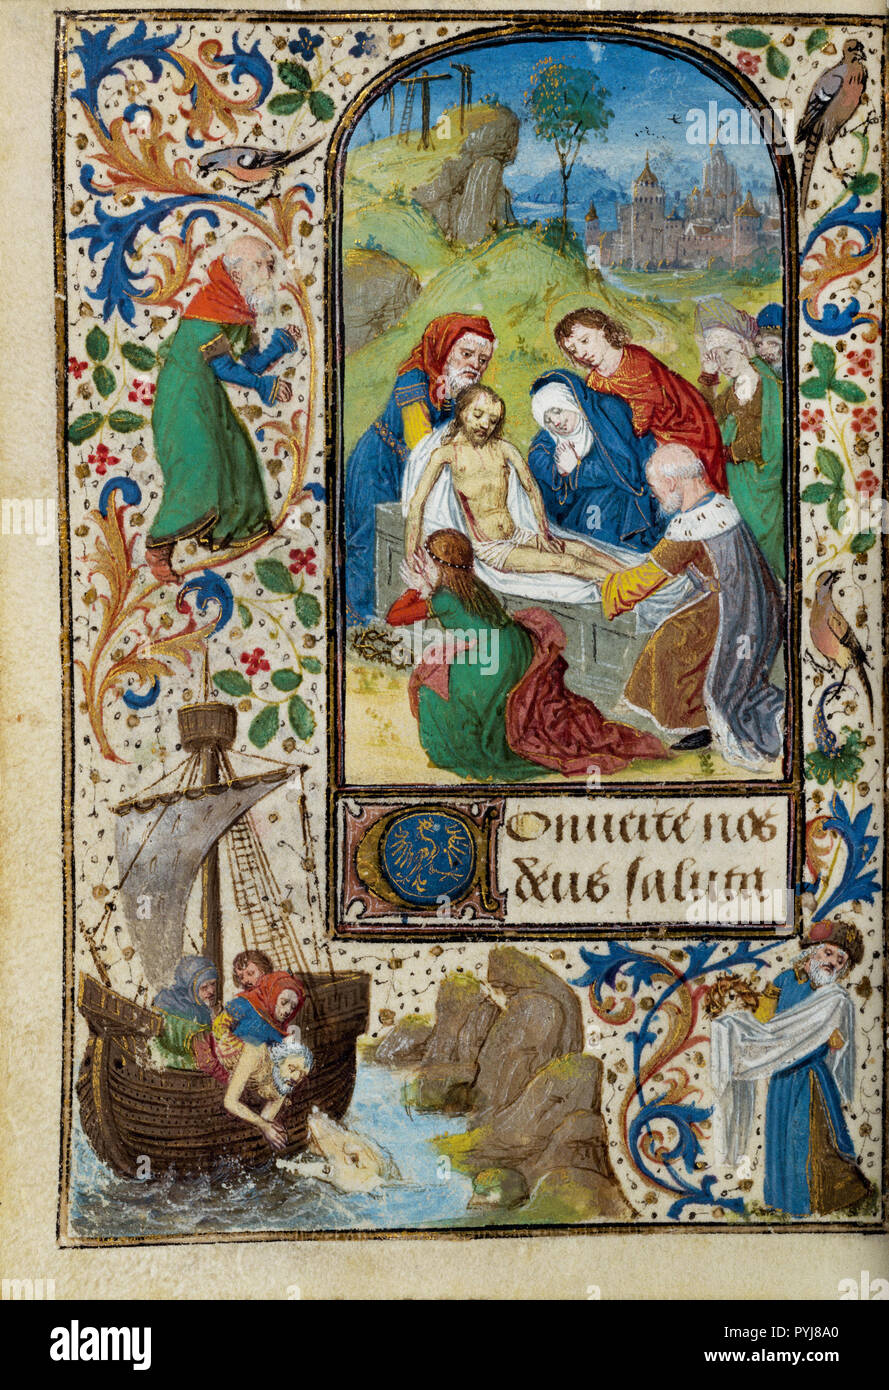 Lieven van Lathem, The Entombment, Circa 1471  Tempera colors, gold leaf, gold, silver, ink on parchment, The J. Paul Getty Museum, Los Angeles, USA. - Stock Image